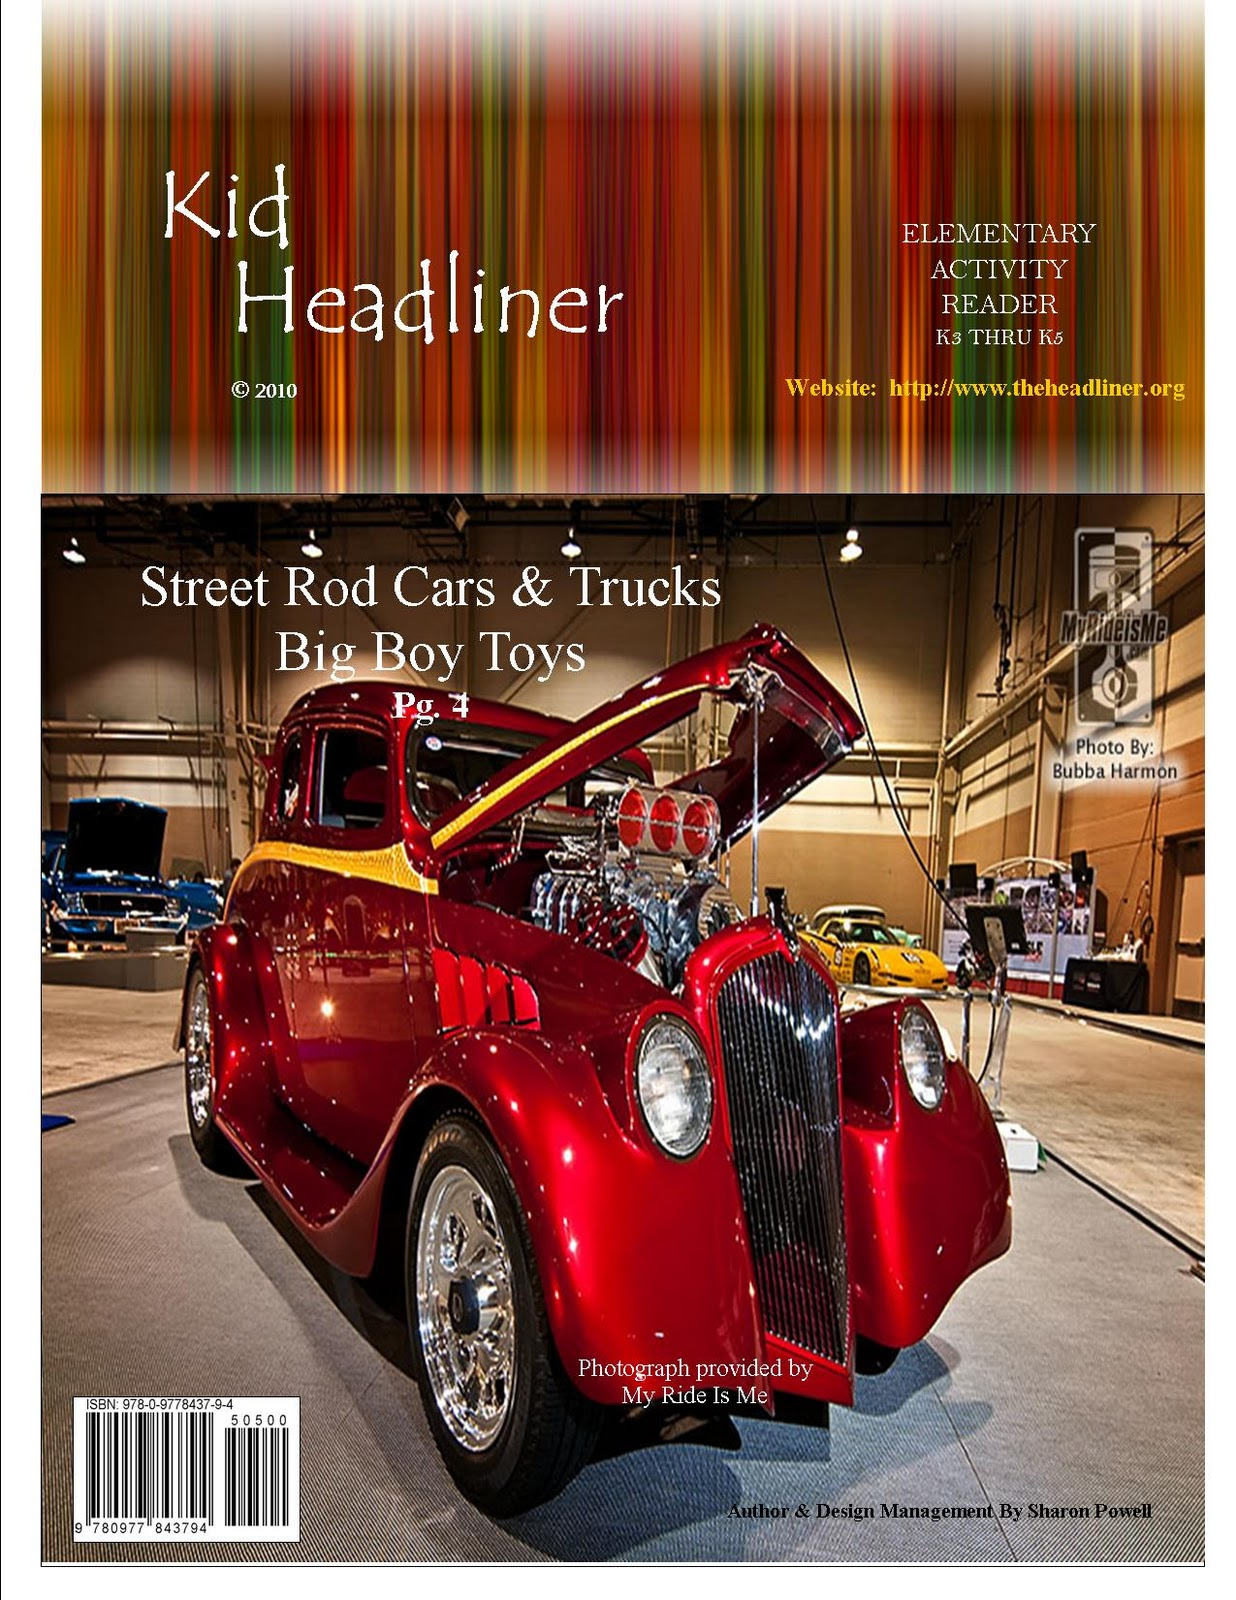 Big Boy Toys Cars : The headliner youth reader publication by sharon powell